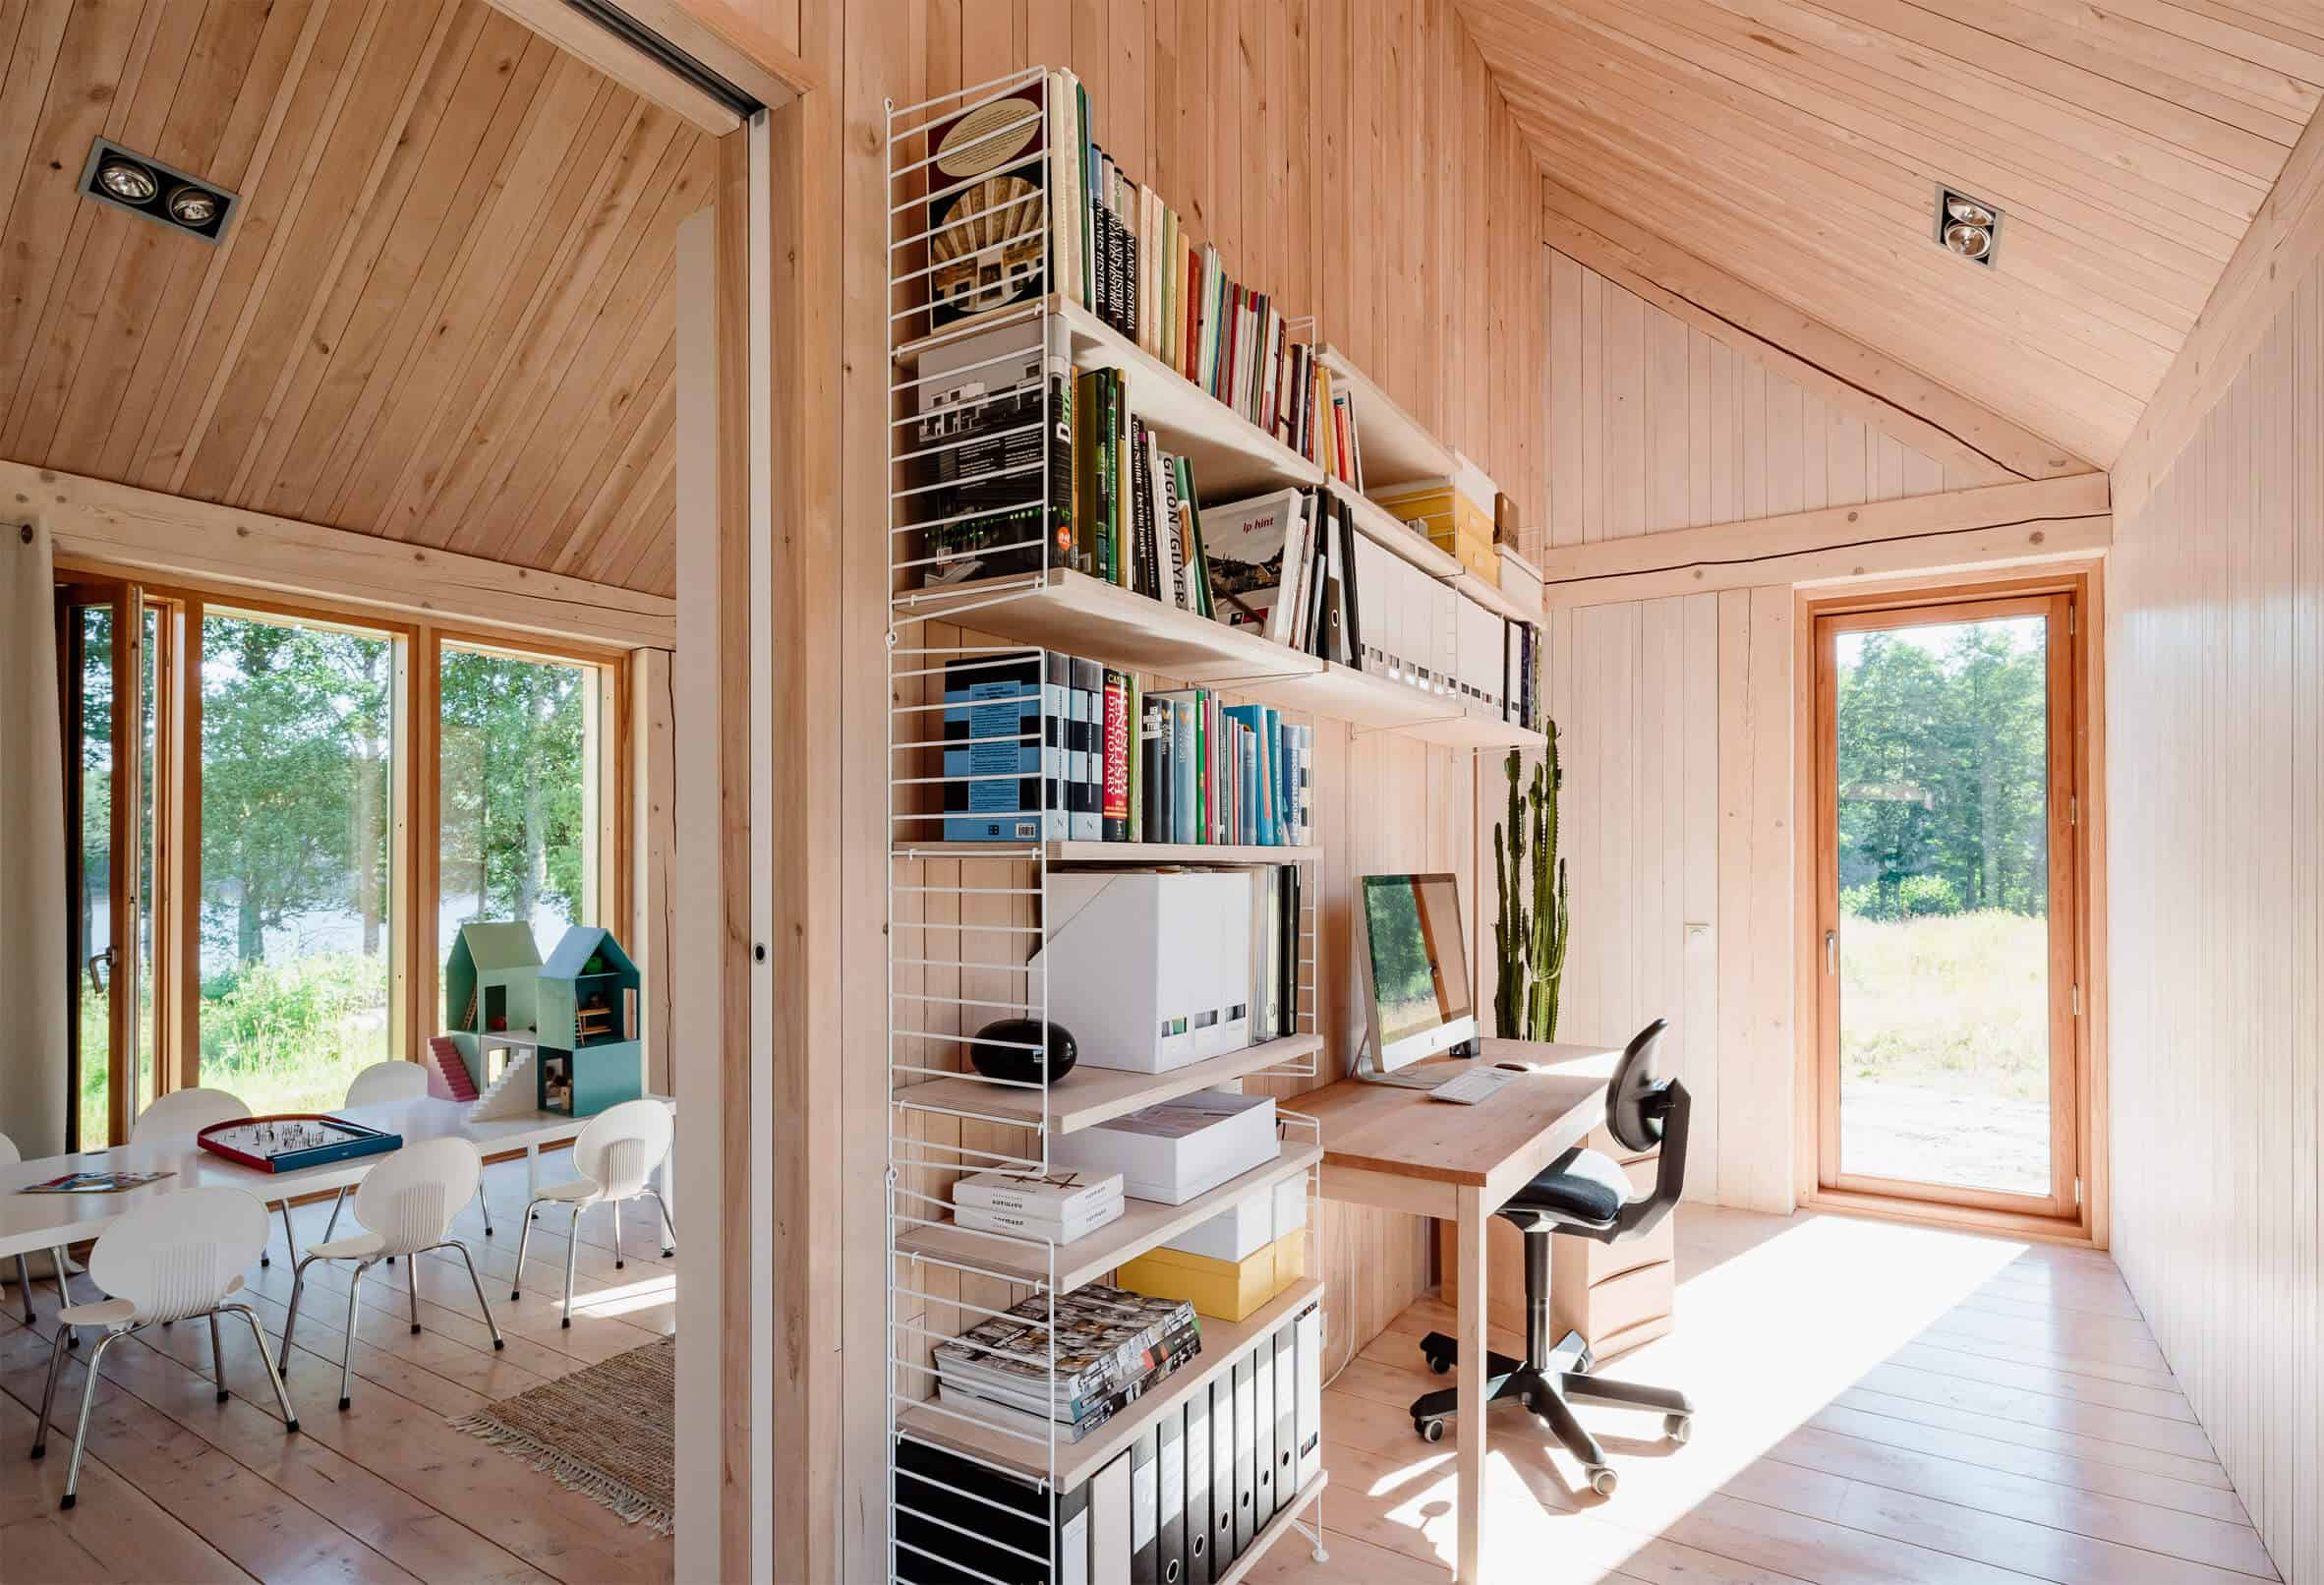 Iconic Simplicity in a Finnish LakeHouse by MNy Arkitekter (7)